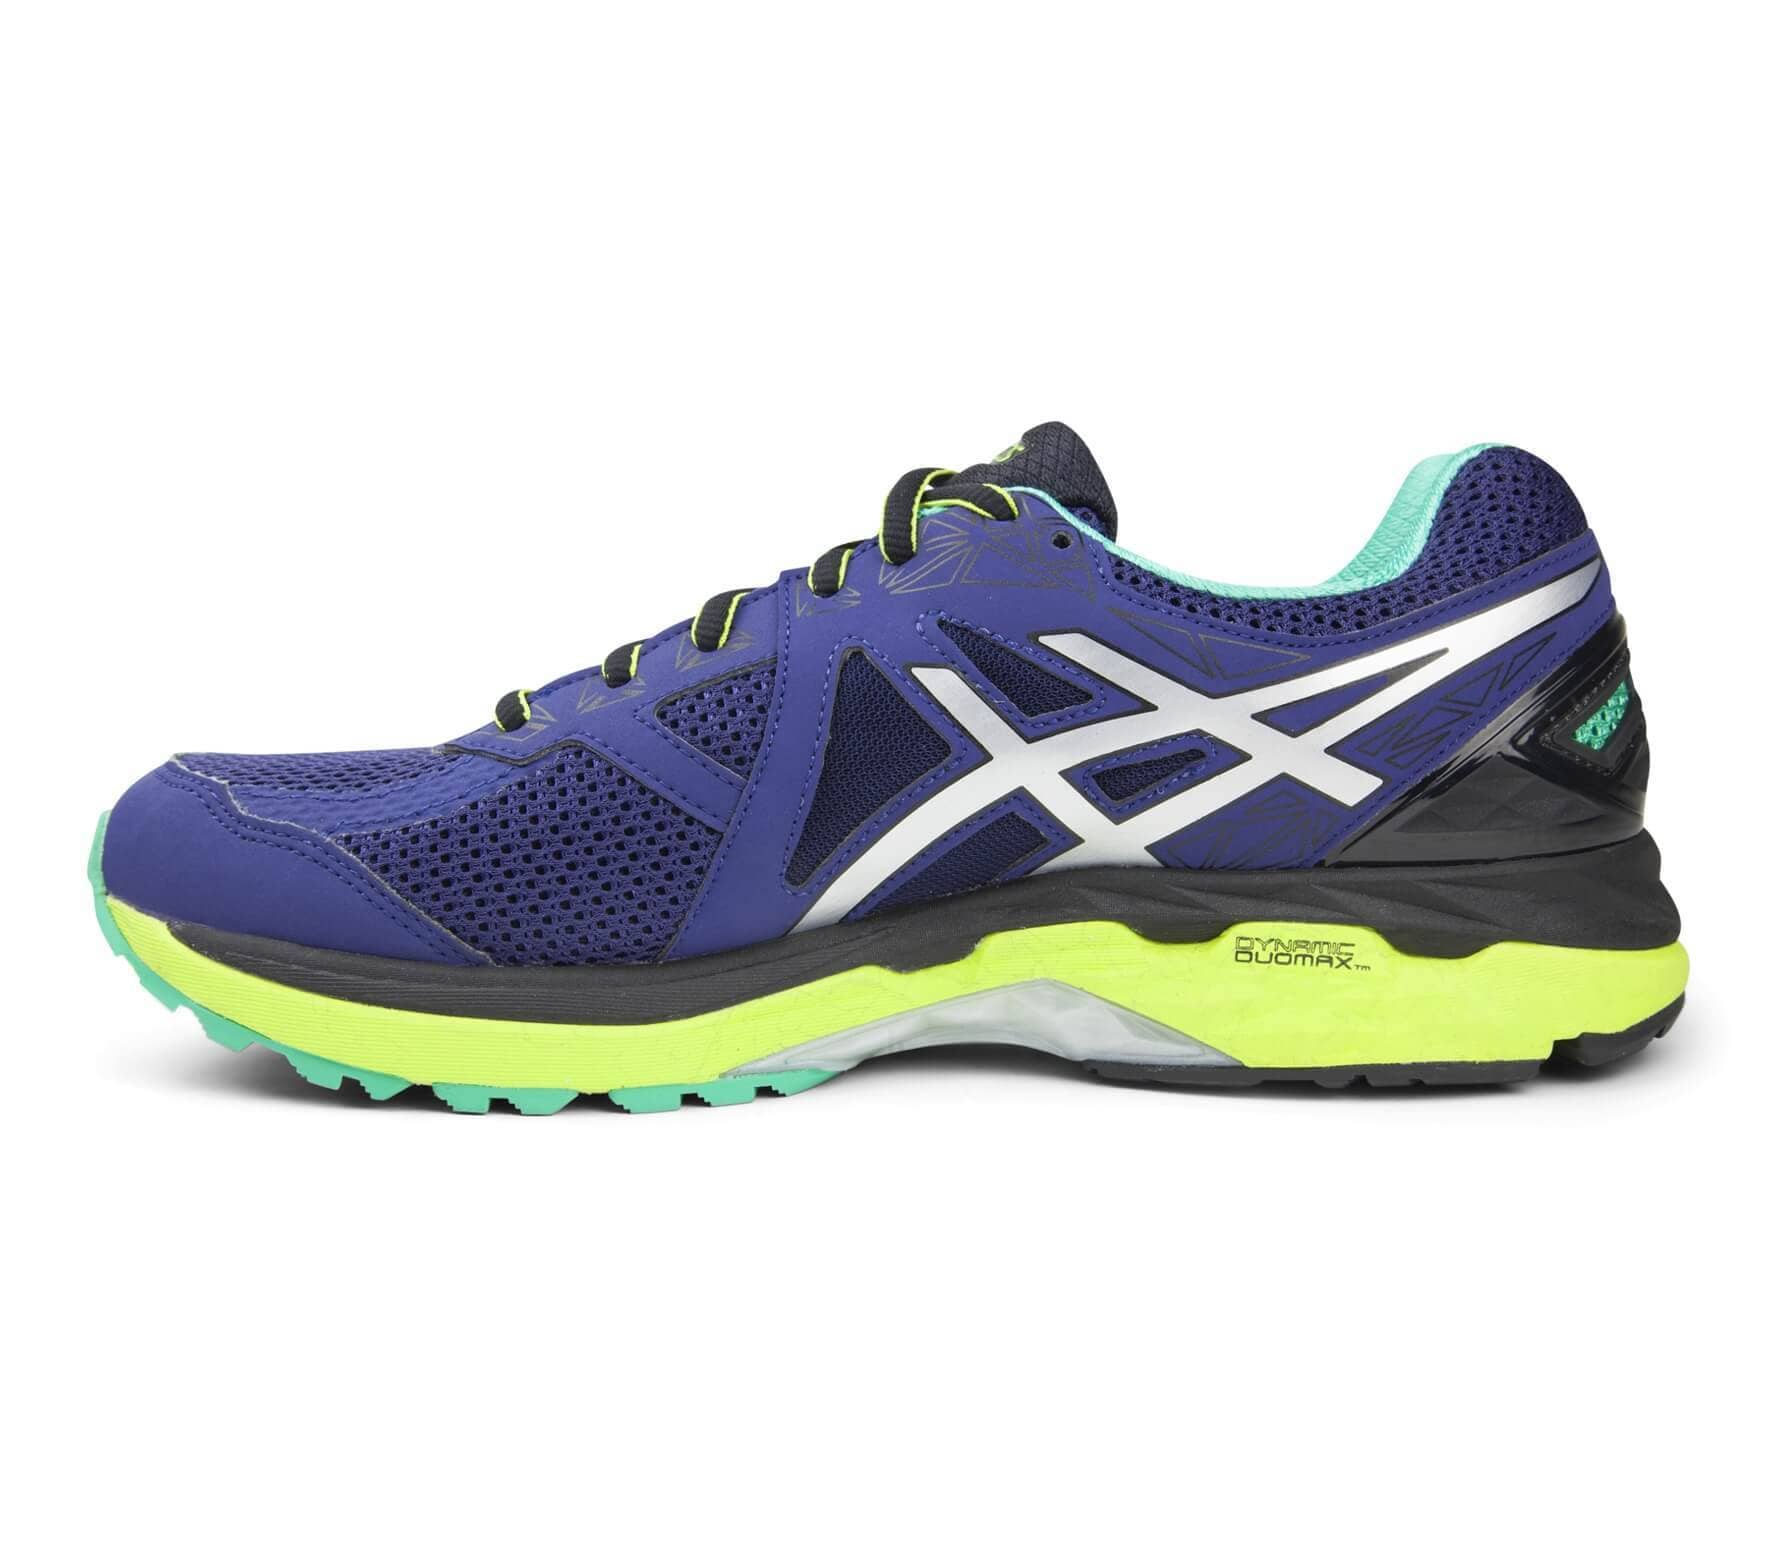 ASICS - GT-2000 4 G-TX men s running shoes (dark blue yellow) - buy ... ec97164d6c81